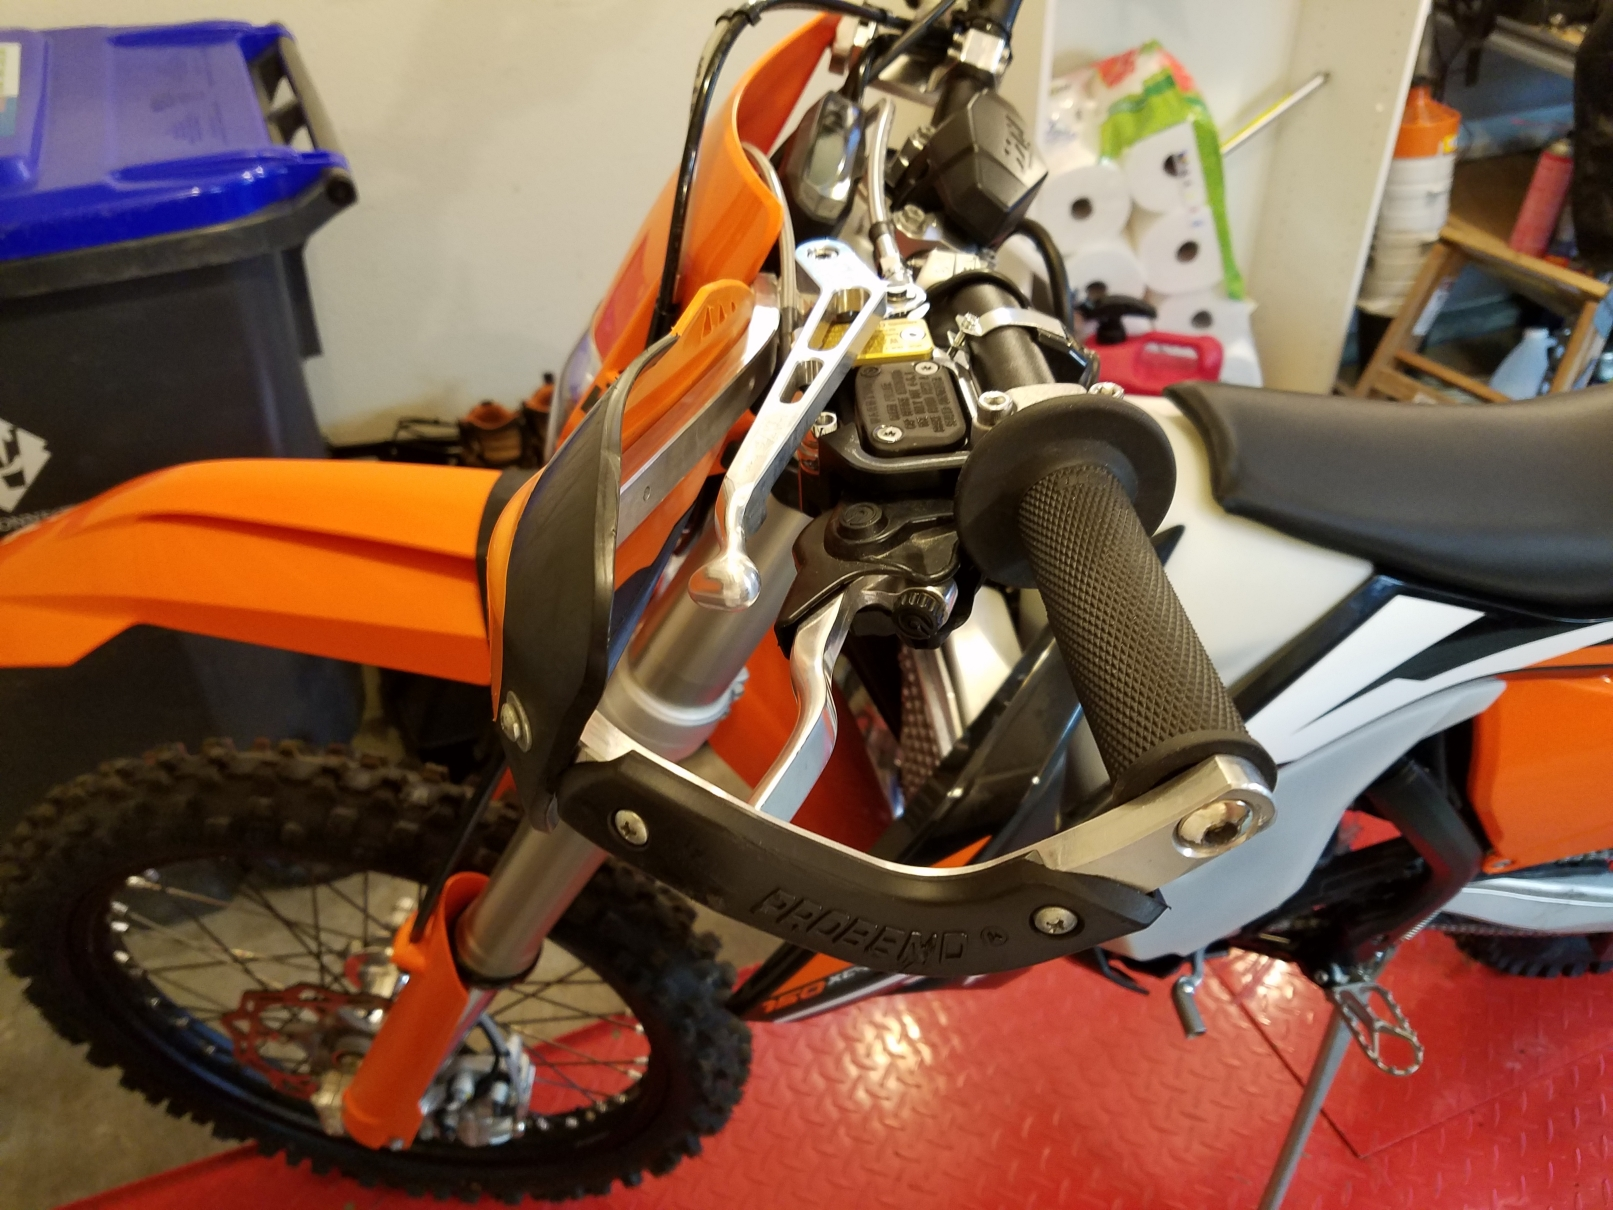 KTM XCW 150 - Now with Clake - AR15 COM